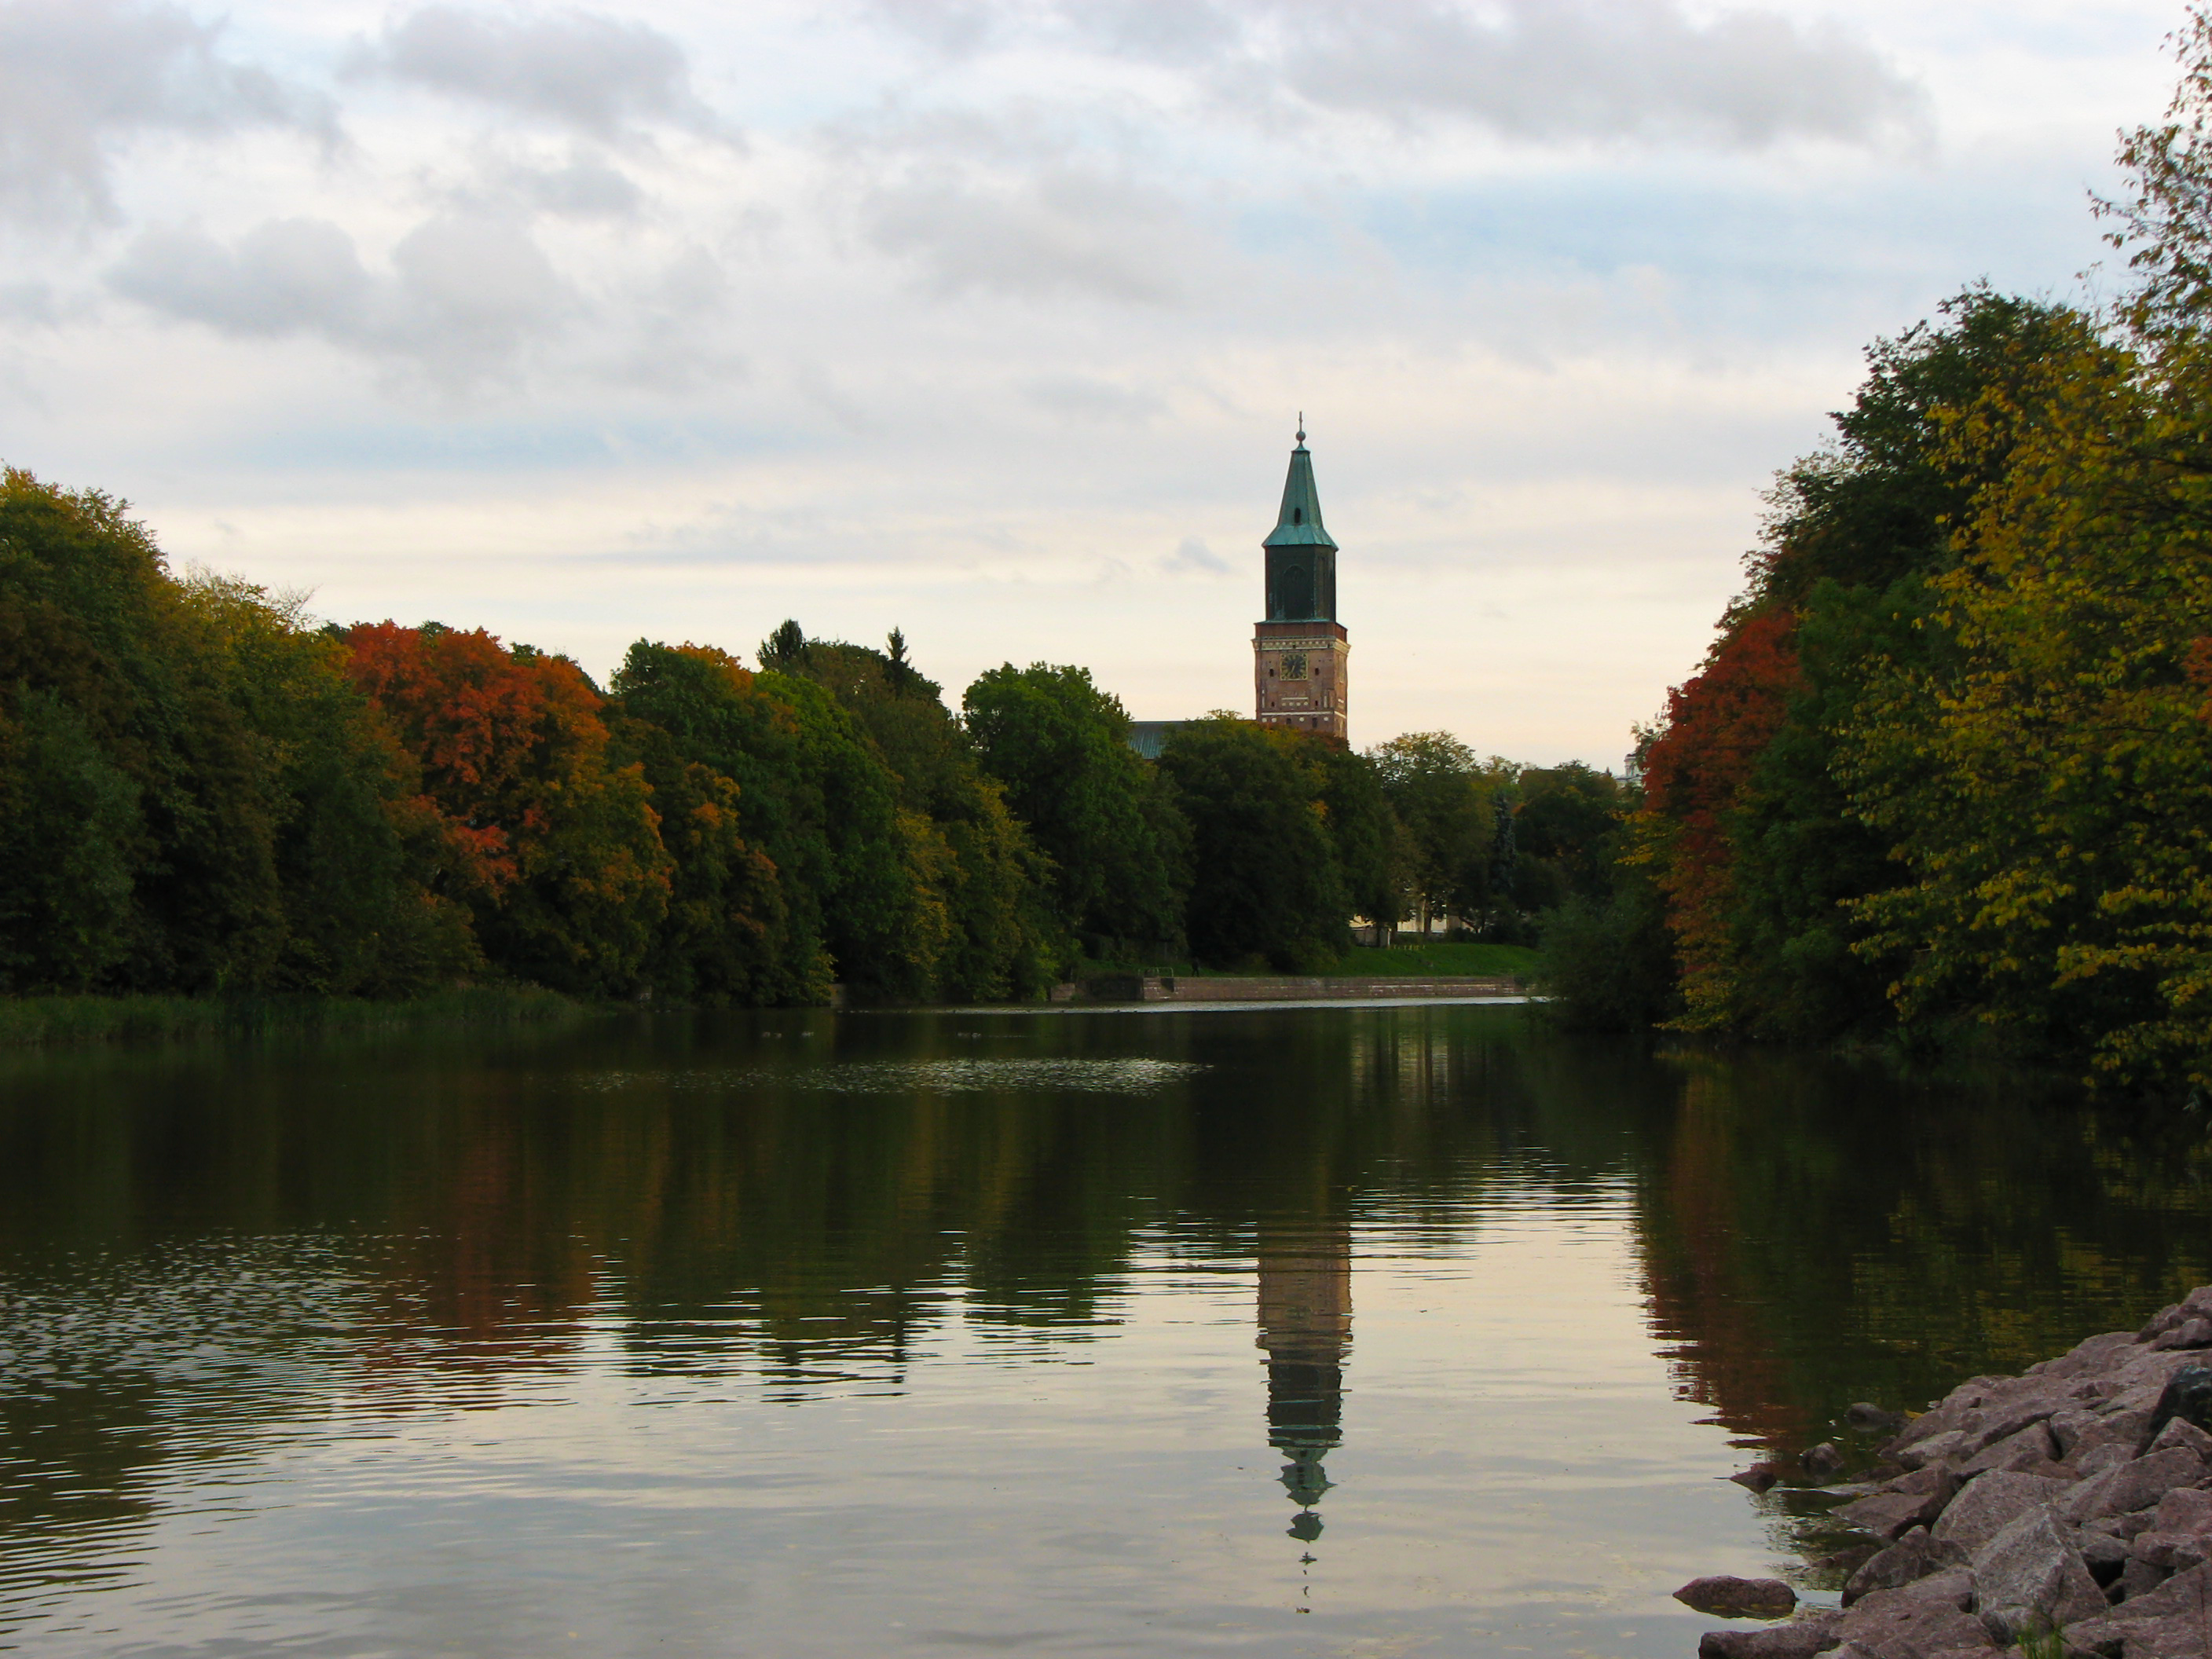 File:Turku Cathedral and Aura River.jpg - Wikimedia Commons